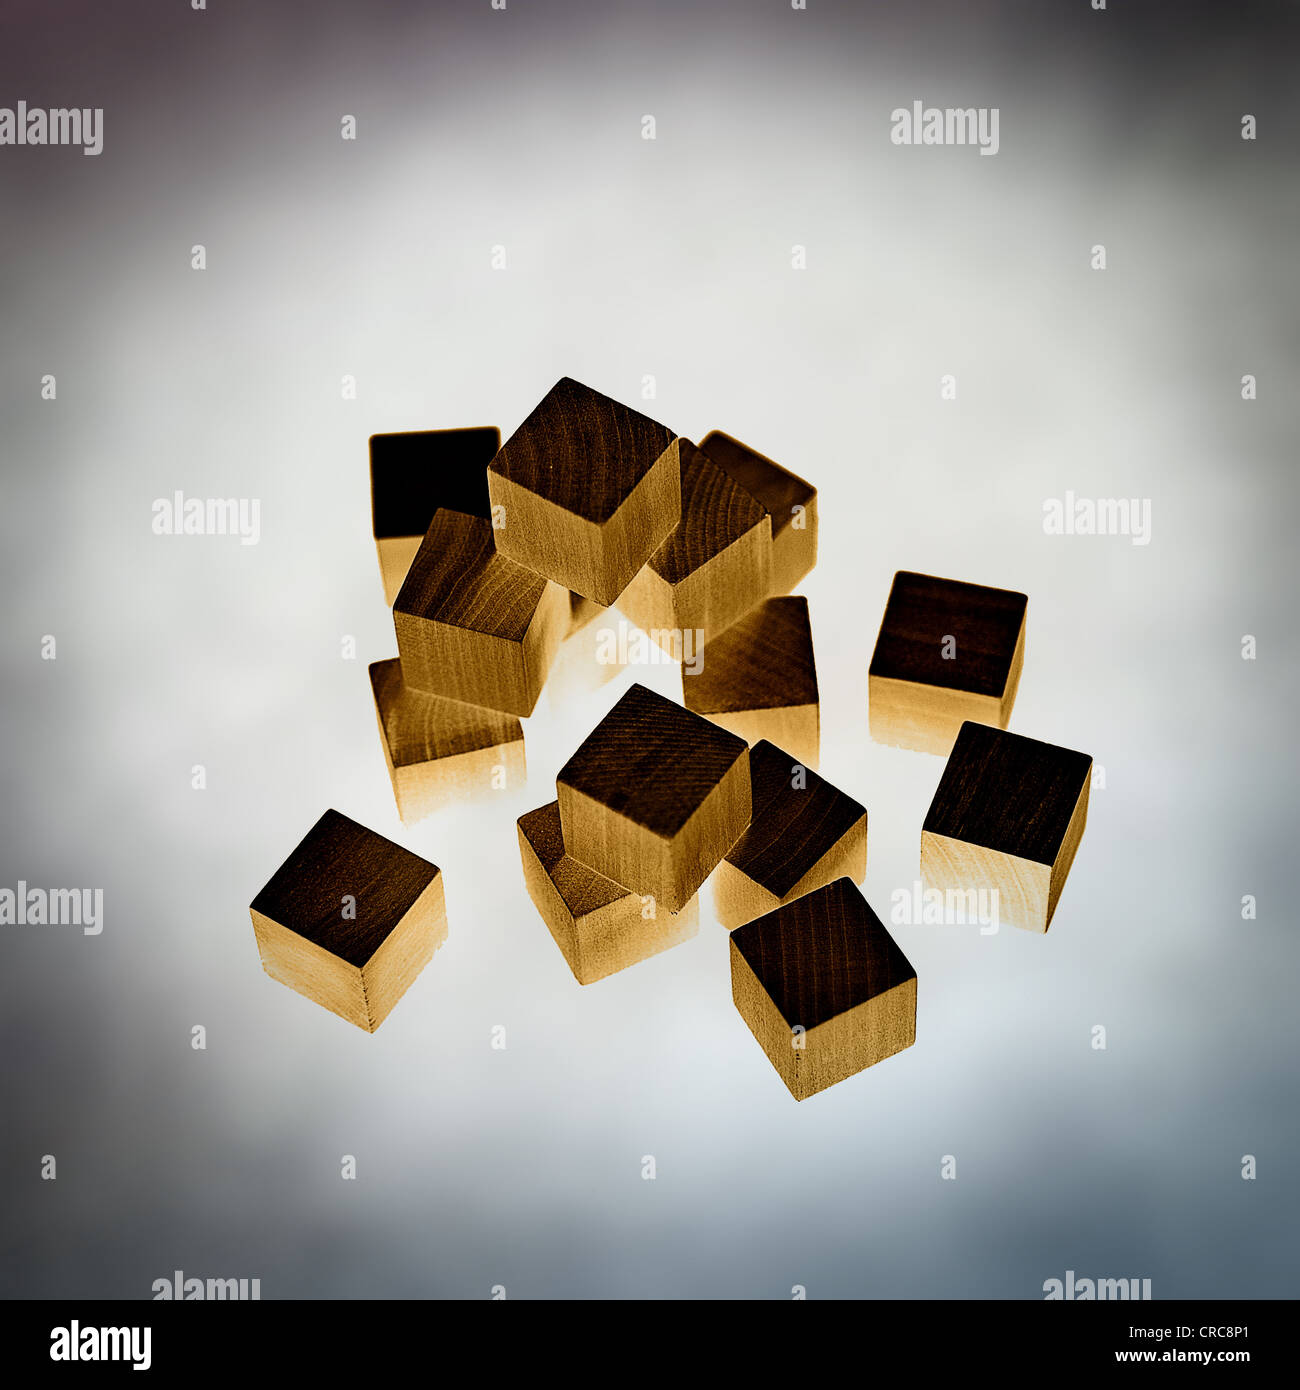 wood cubes - Stock Image